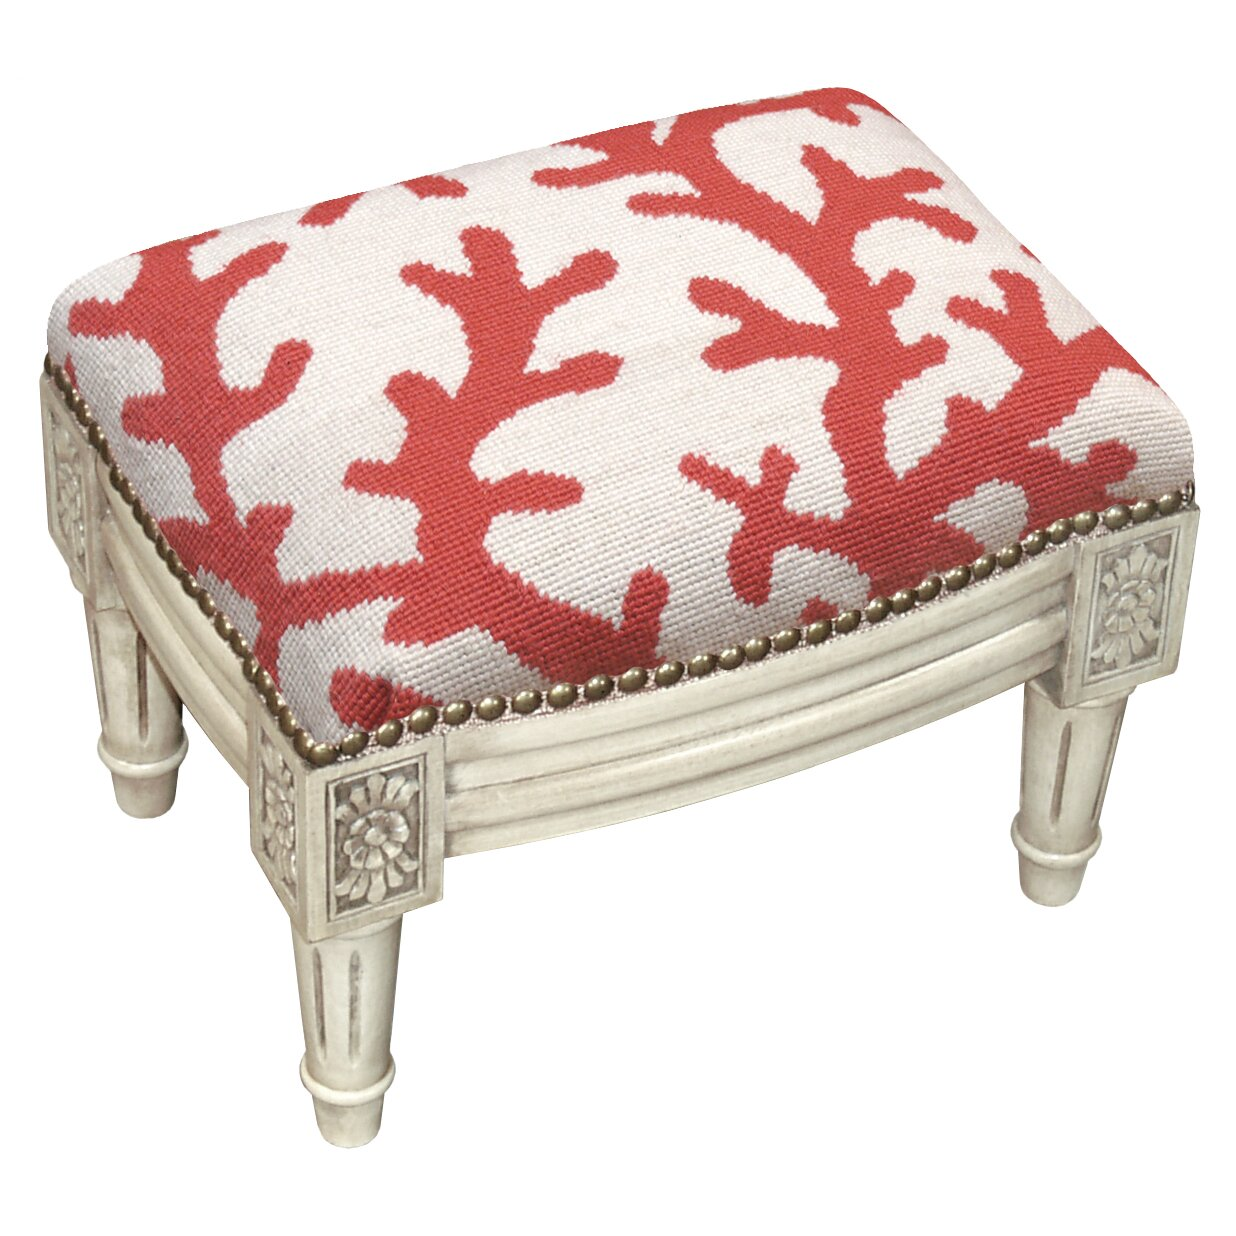 123 Creations Coral Wool Needlepoint Upholstered Footstool